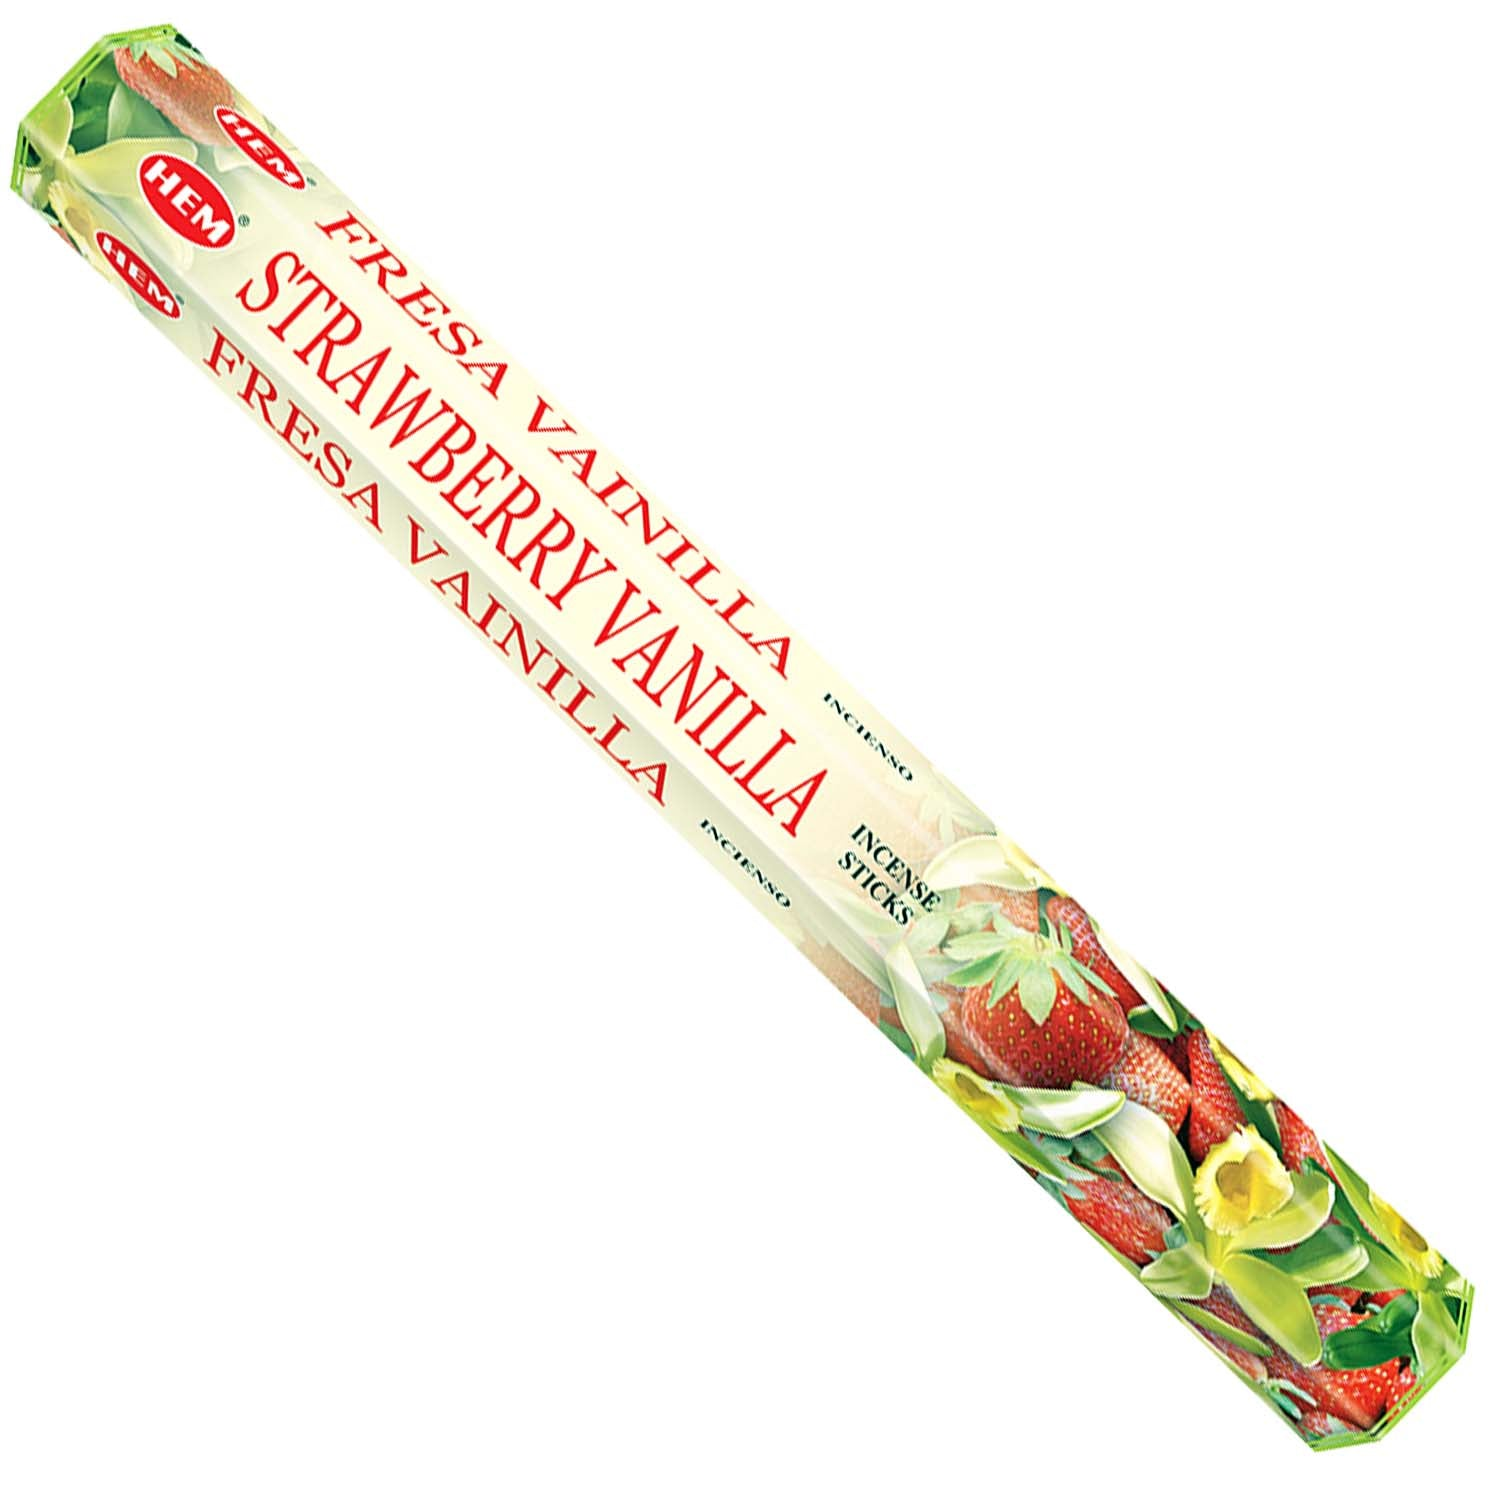 HEM Hexagon Strawberry Vanilla Incense 6 Pack - Rivendell Shop NZ